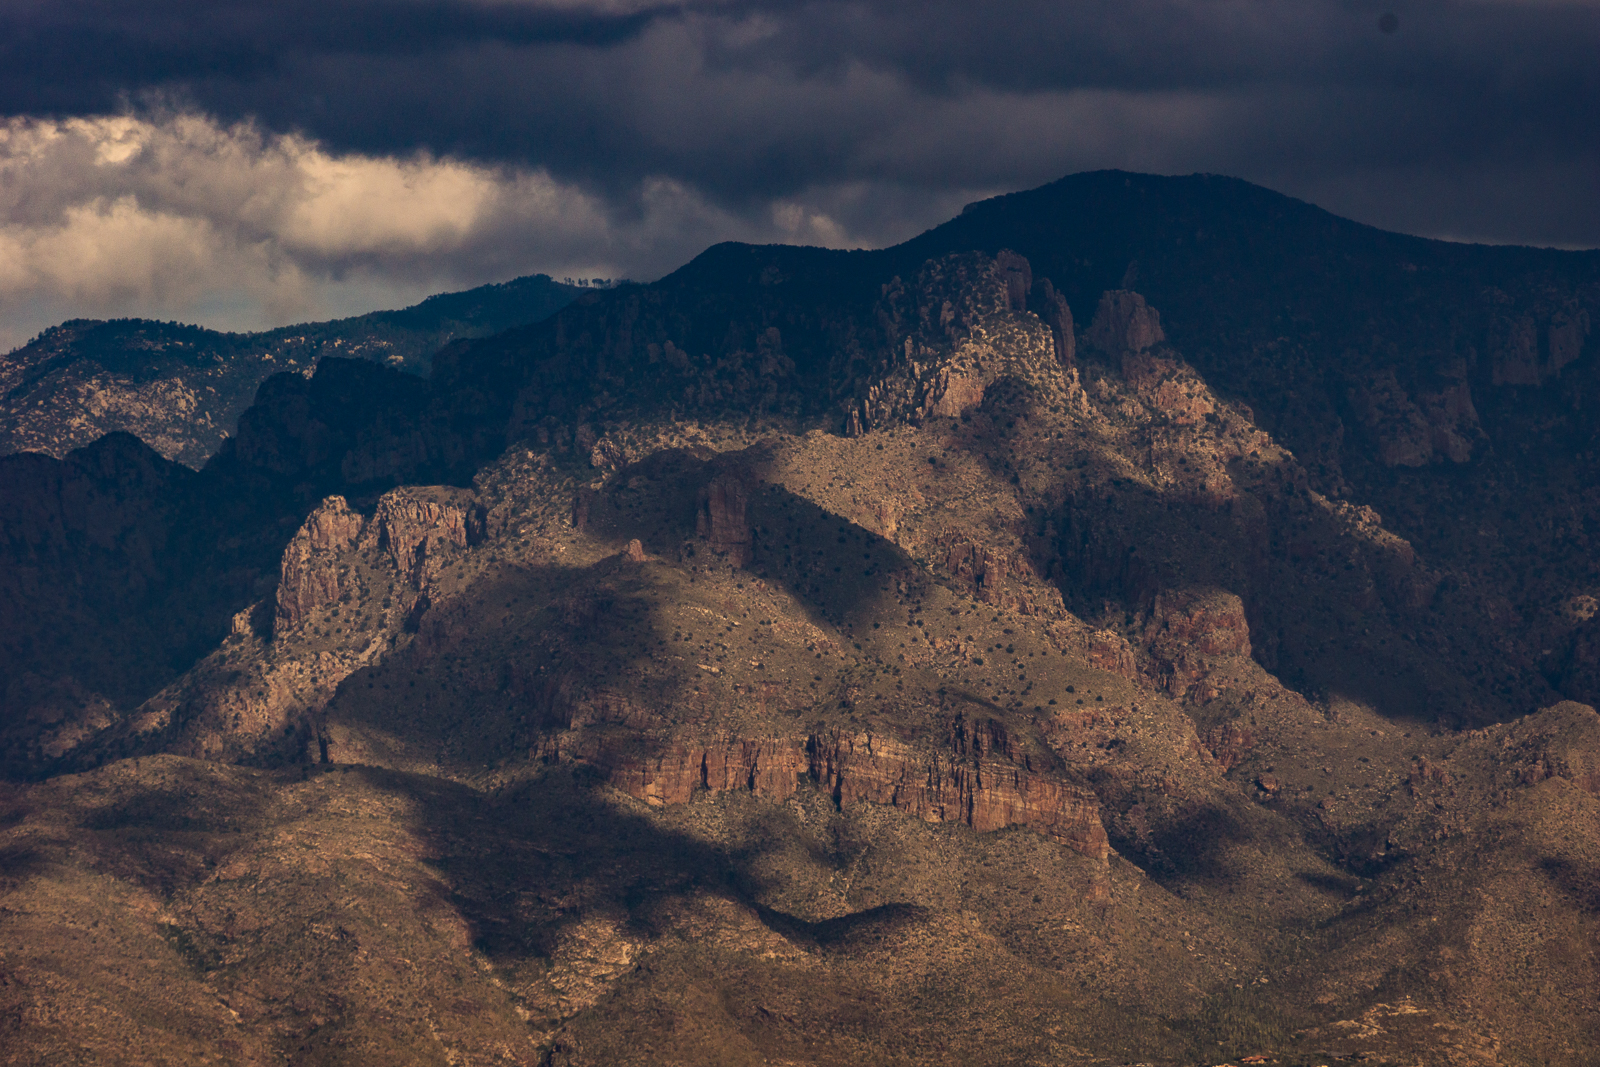 Shot from the slopes of Bren Mountain in the Tucson Mountains - Prominent Point disappearing into shadow, Finger Rock almost visible and light on the slopes above the North Campbell Trailhead.